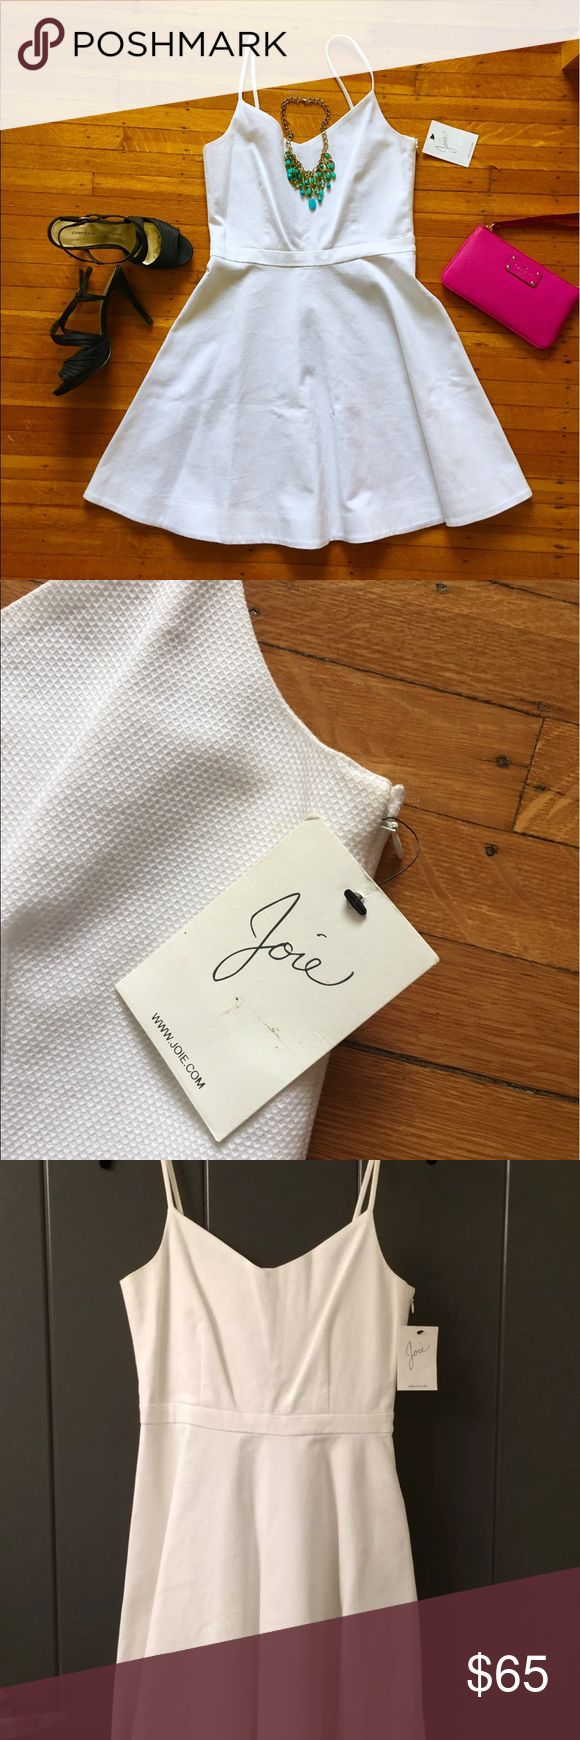 NWT WHite Joie Sundress Gorgeous white Joie dress. Perfect for the Derby, graduation or a wedding shower or rehearsal! Flattering flare fit. Measurements in photos. Joie Dresses